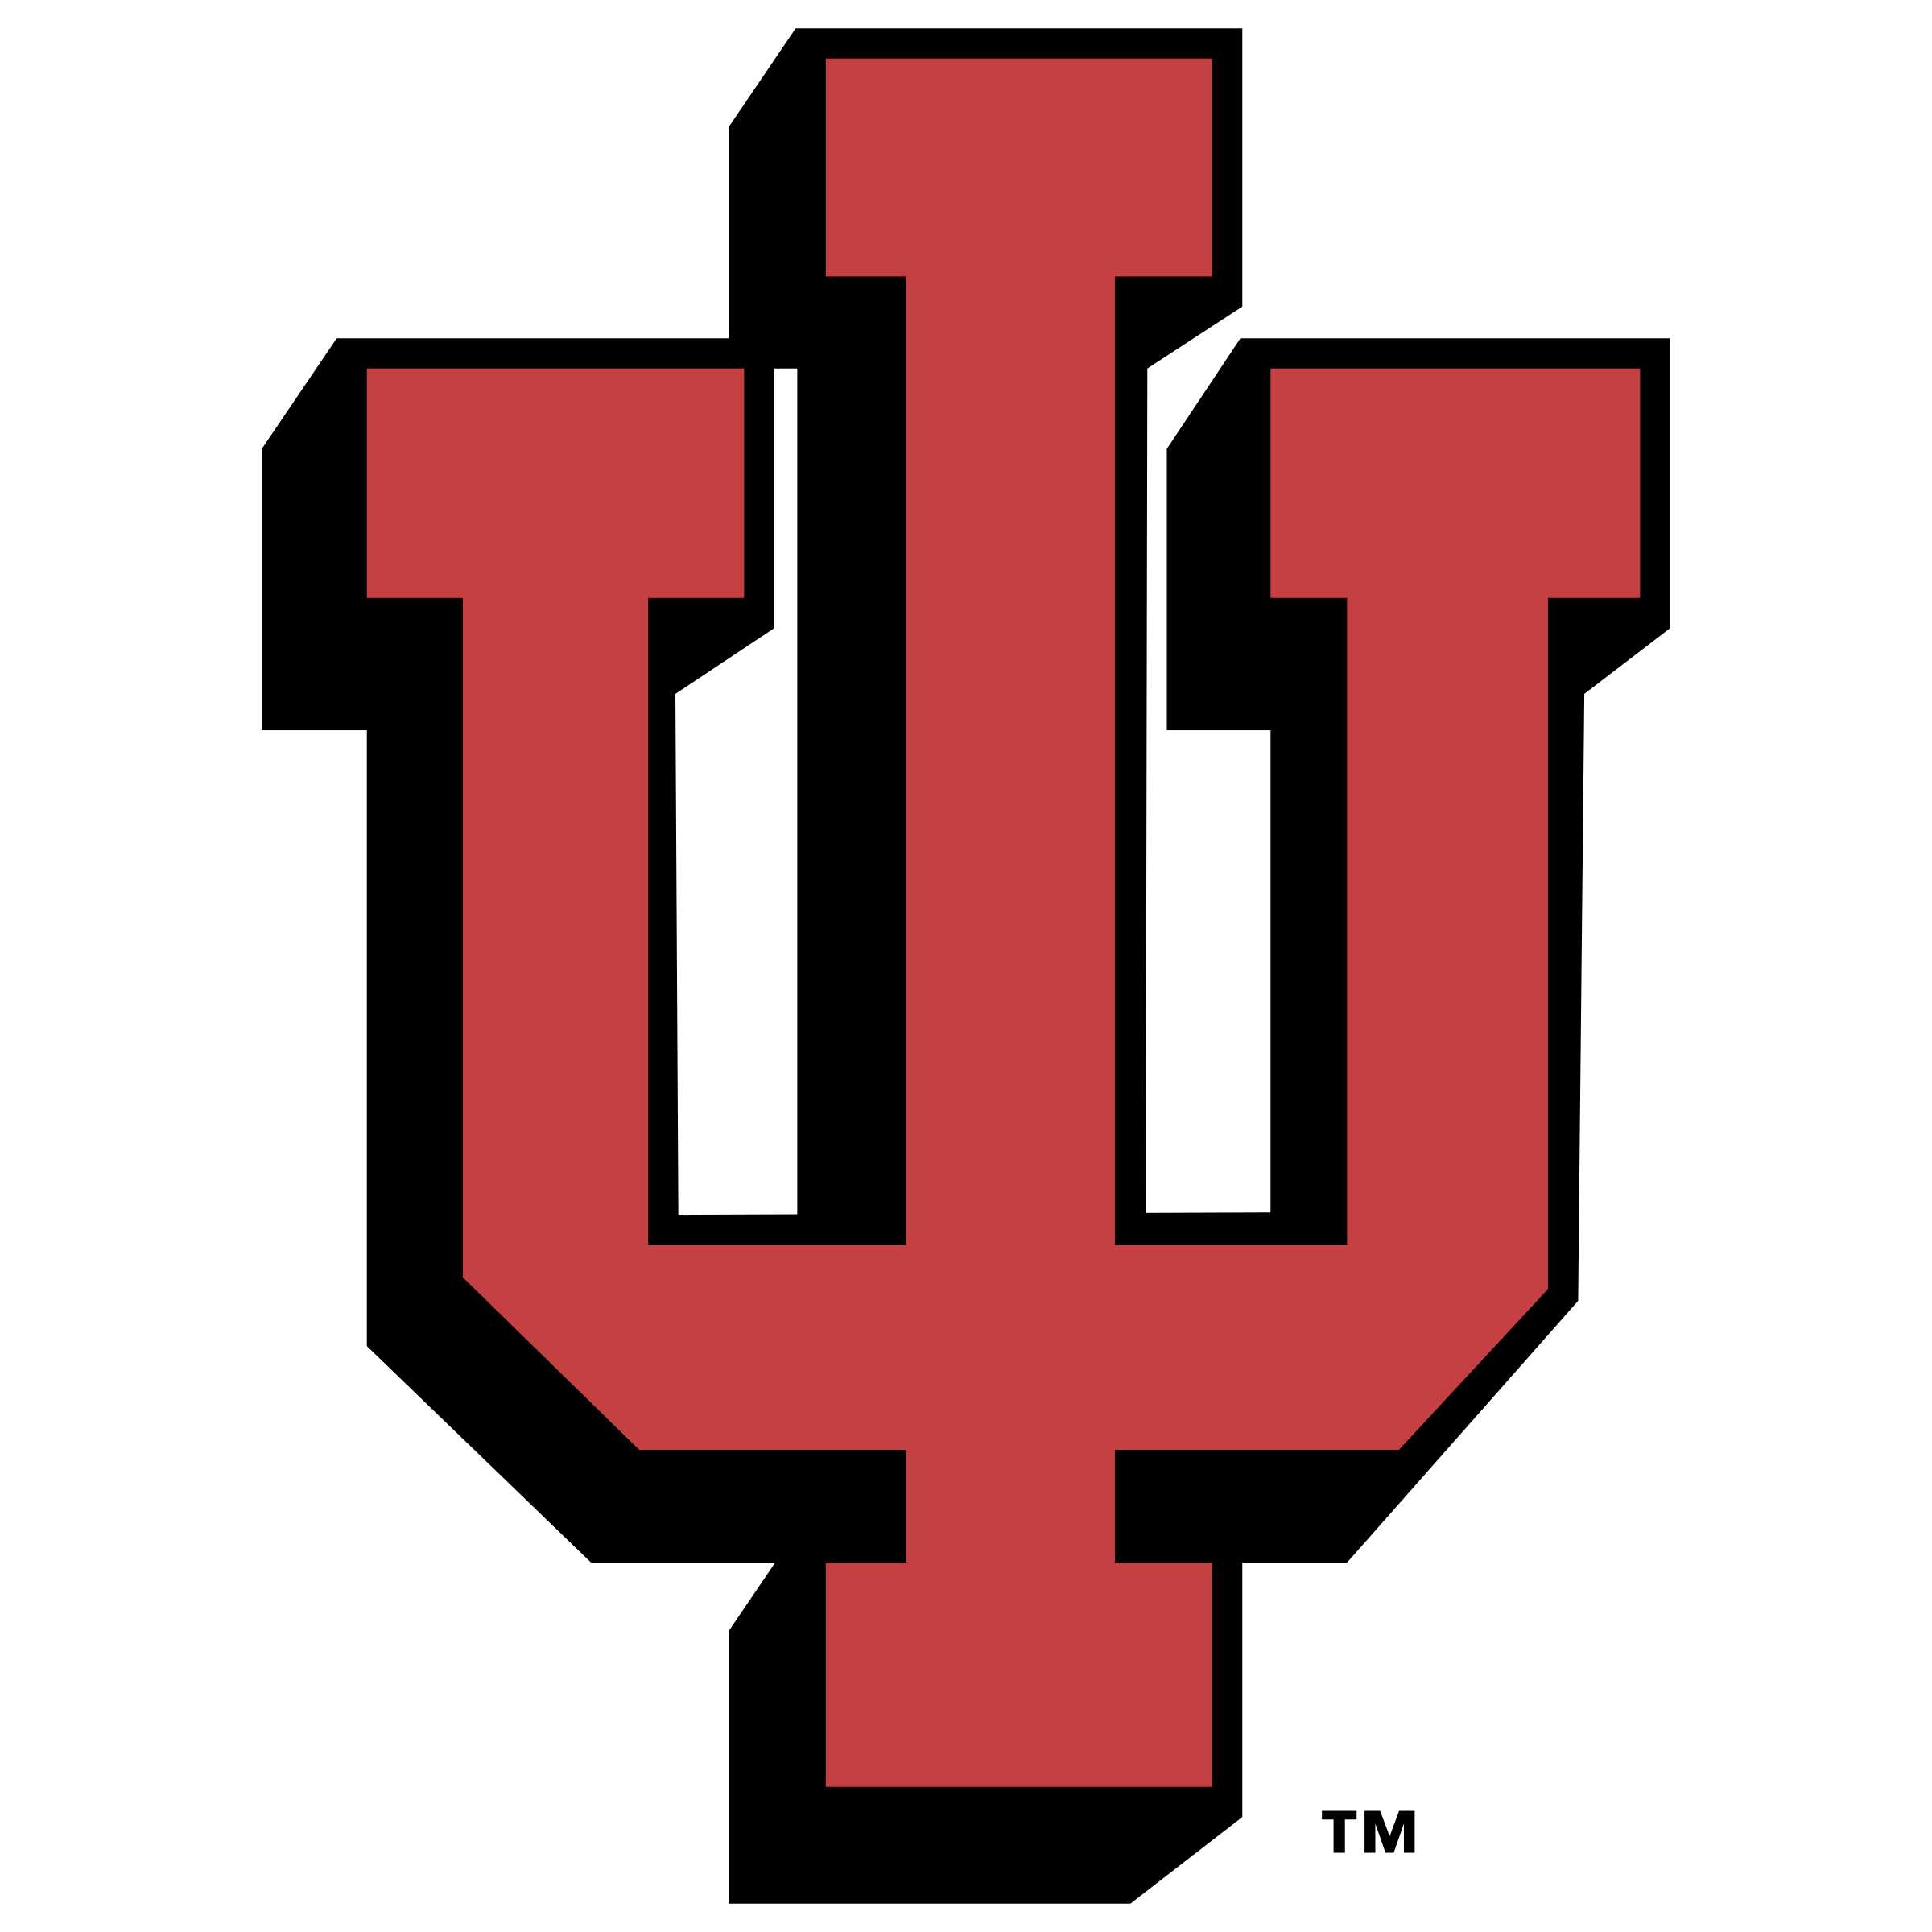 Indiana Hoosiers Logo PNG Transparent & SVG Vector.